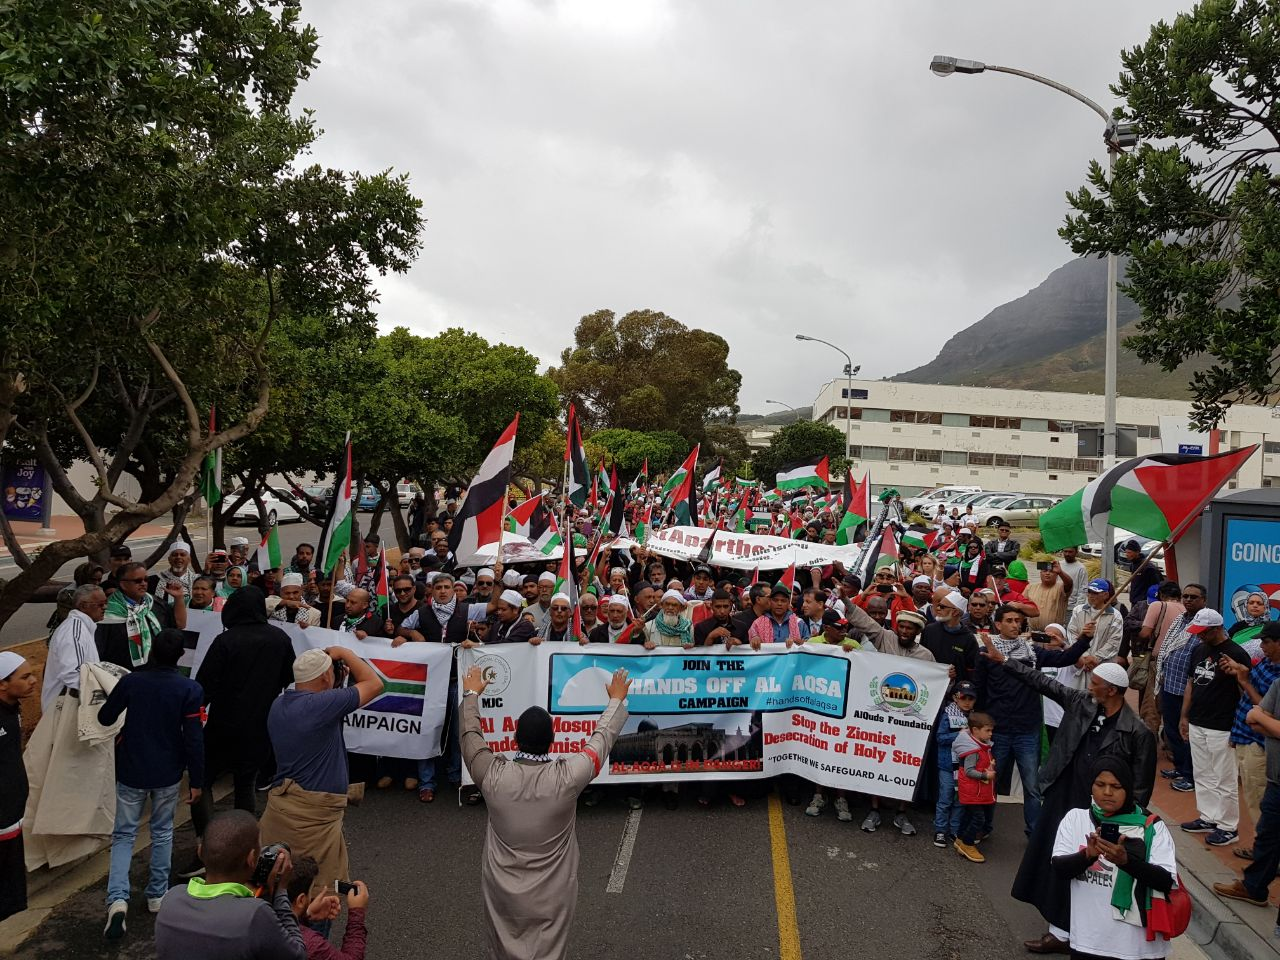 joint statement by sa religious leadership on increased hostility by israeli government and trumps unfortunate meddling - protest03 - Joint statement by SA religious leadership on increased hostility by Israeli government and Trumps unfortunate meddling